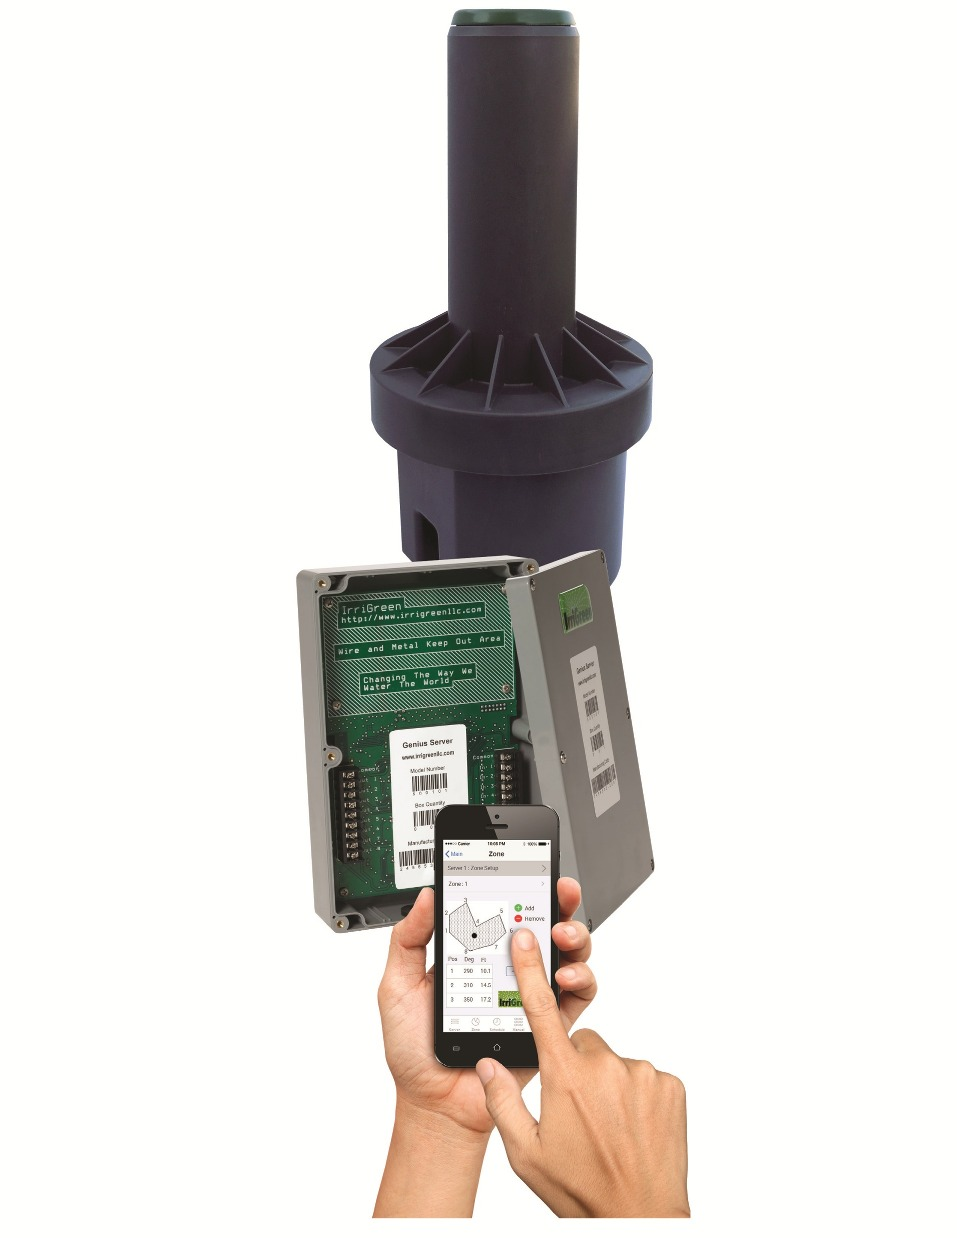 IrriGreen Genius System: Digital Sprinkler, Server and Mobile App